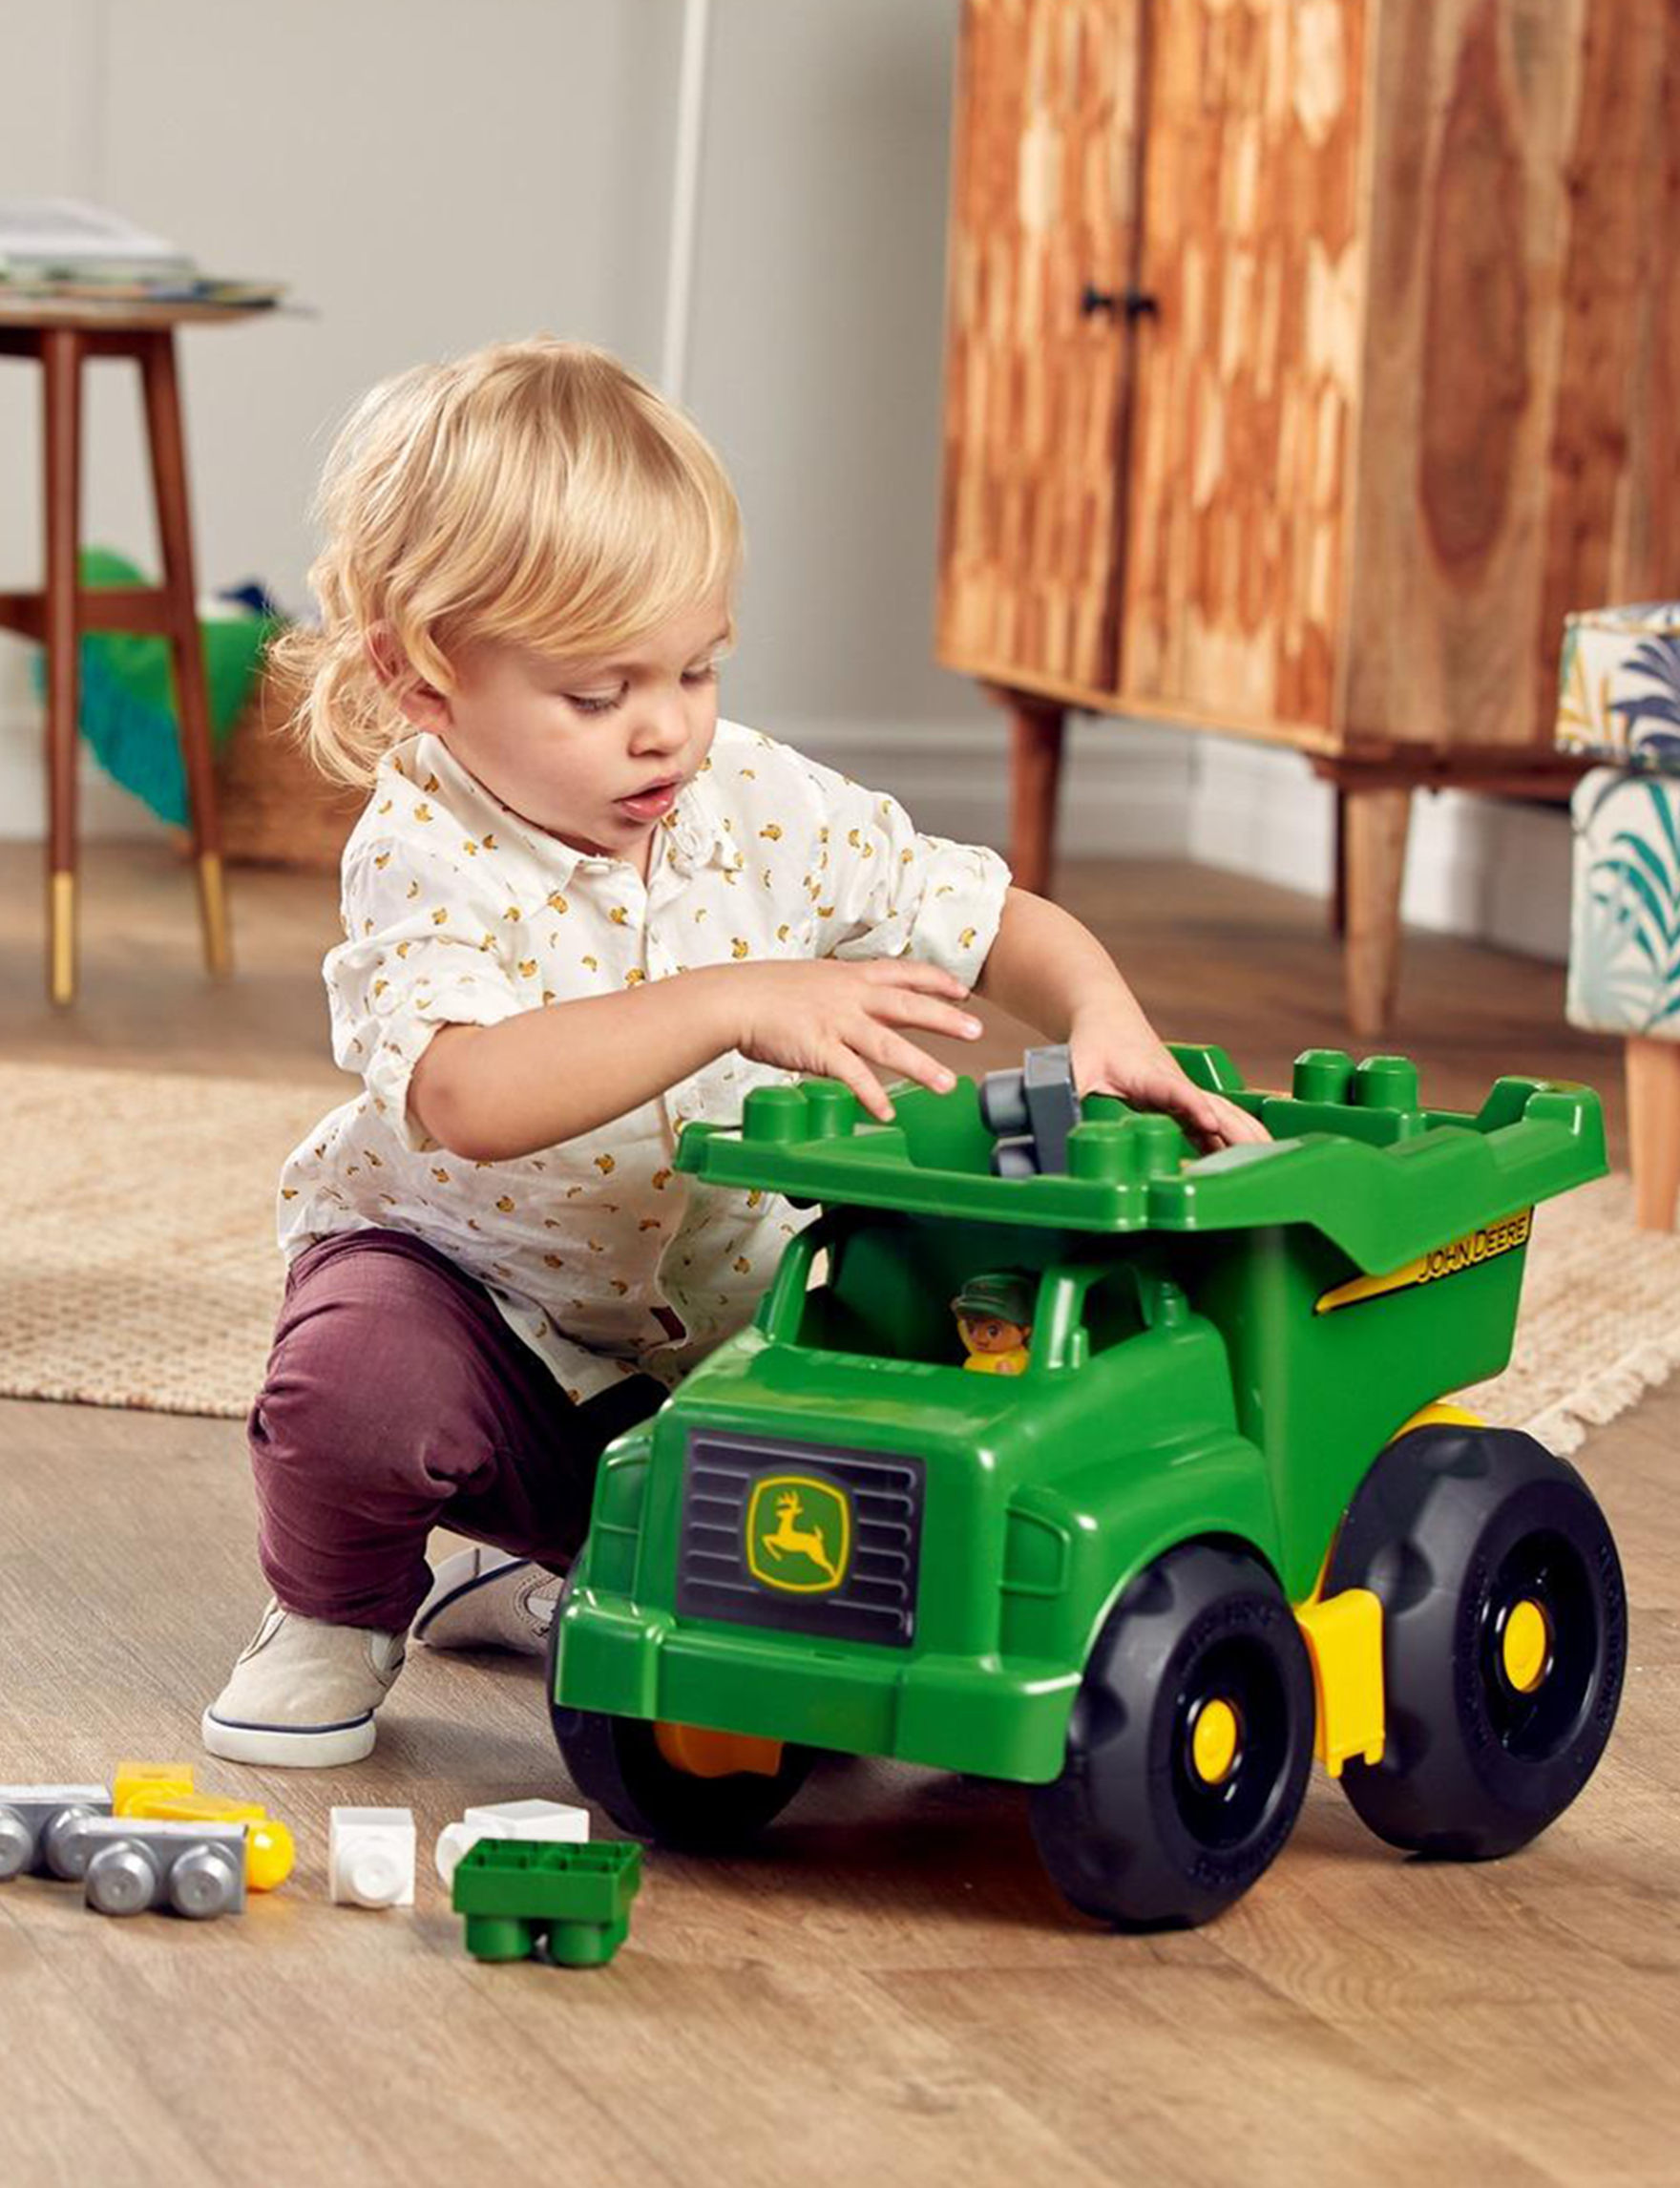 john deere 27-pc. dump truck toy set | stage stores